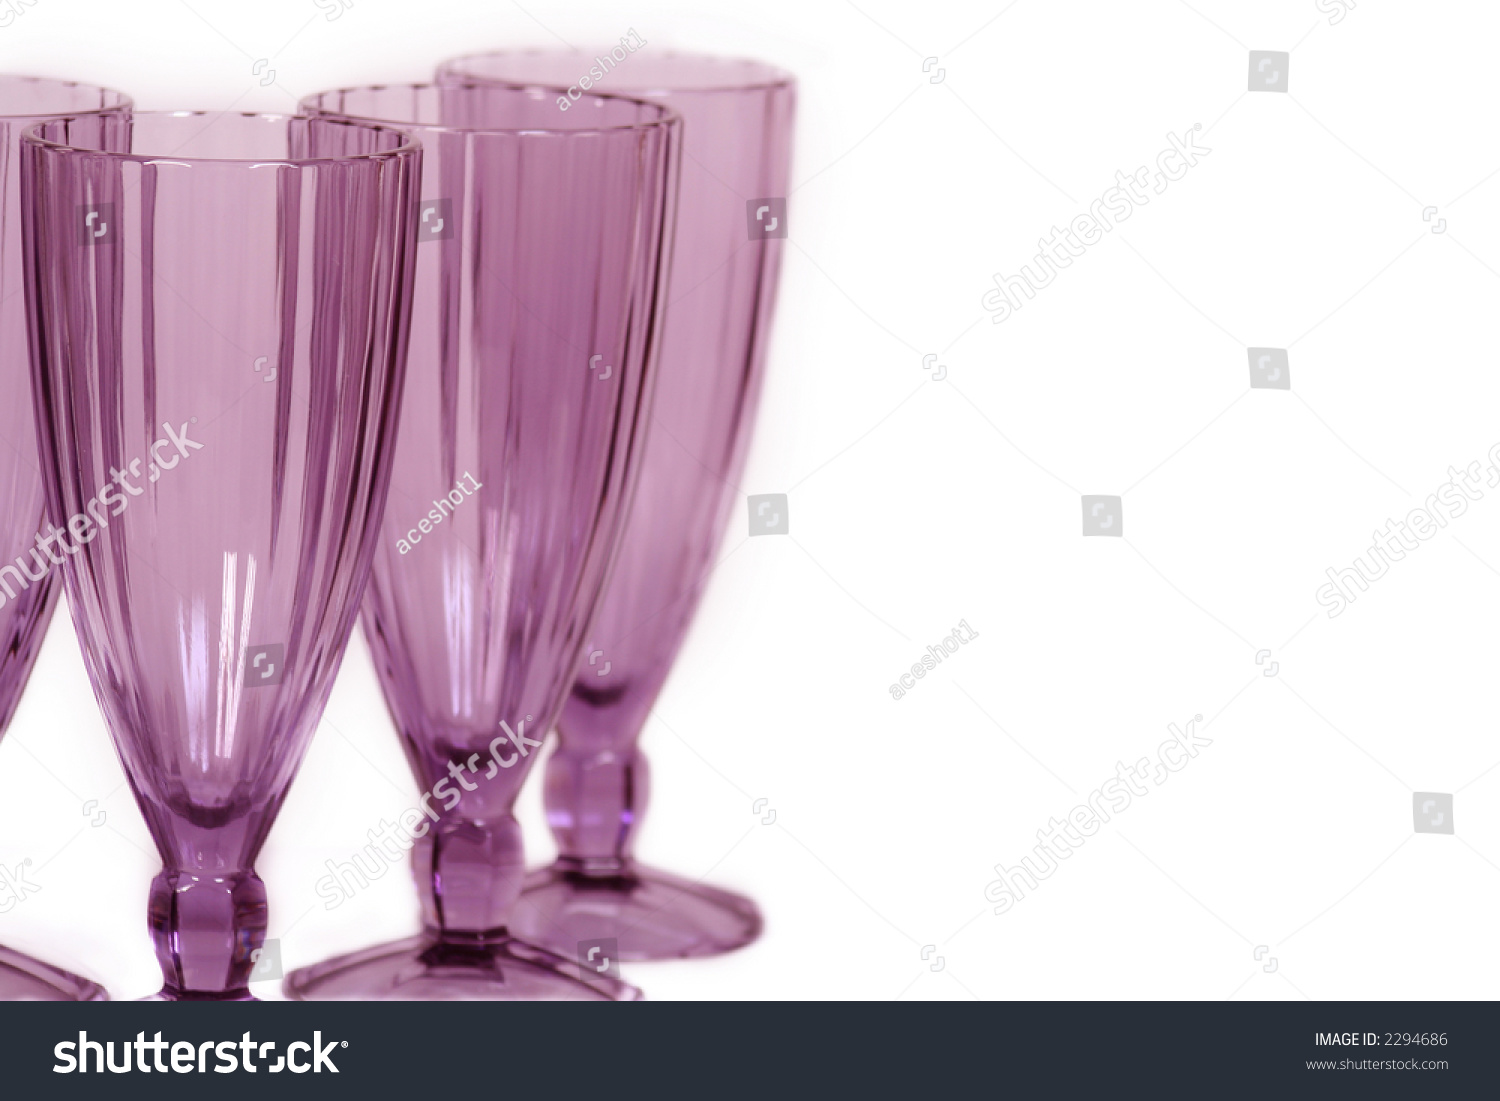 Rose Colored Wine Glasses On White Stock Photo 2294686